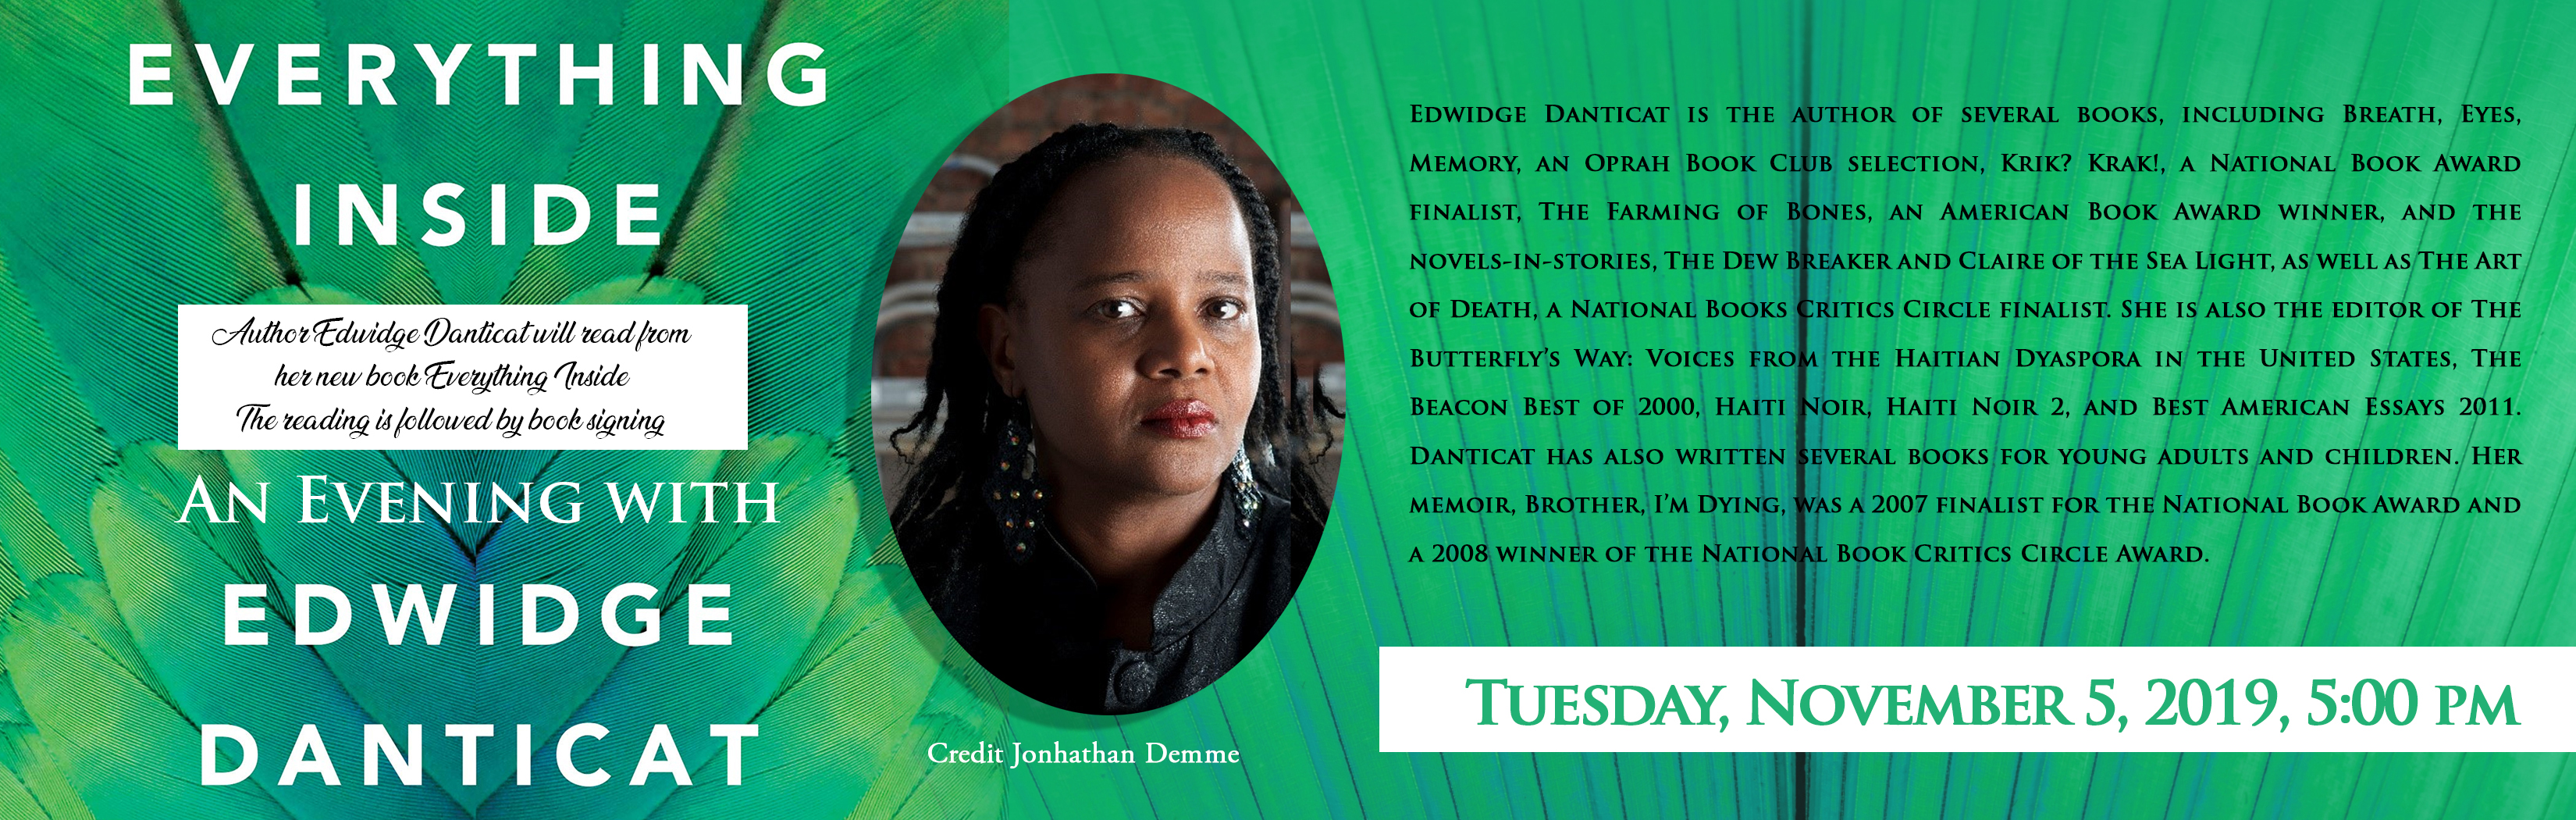 Everything Inside: Evening with  Edwidge Danticat